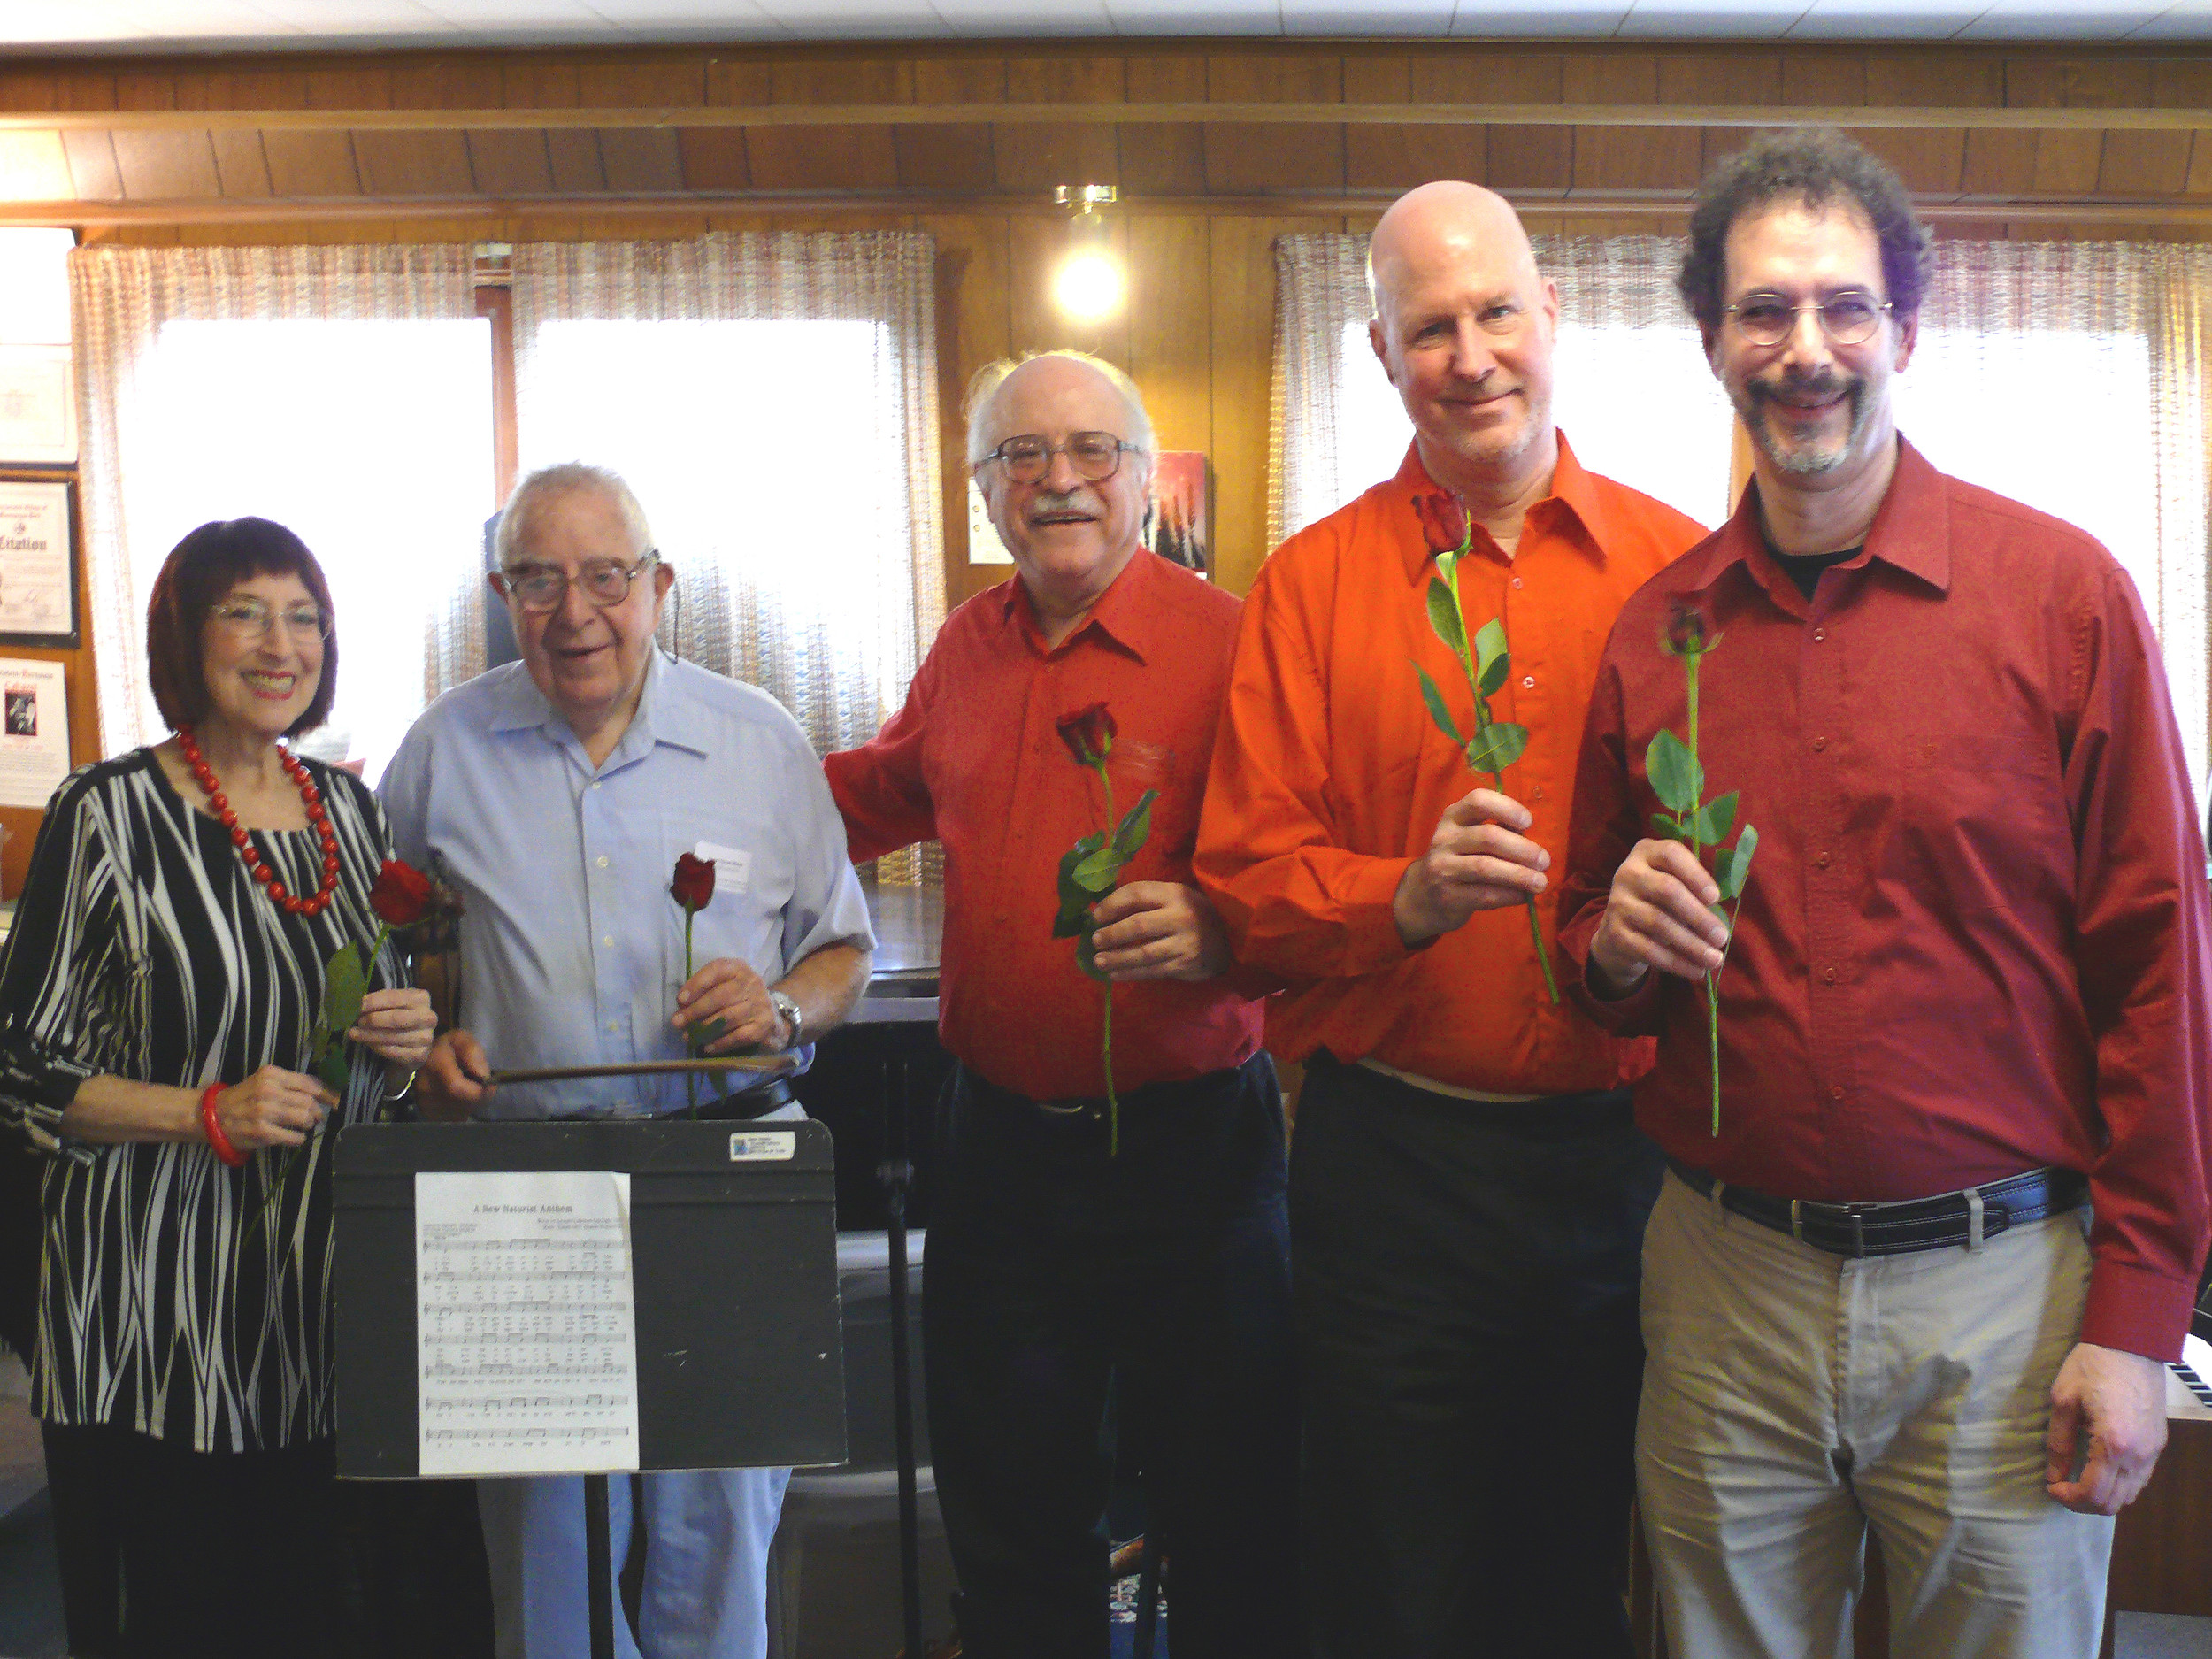 Roses were passed around after the concert performance Helene Williams, left, Nathaniel S. Lehrman, Leonard Lehrman, Kurt Behnke and Daniel Hyman.